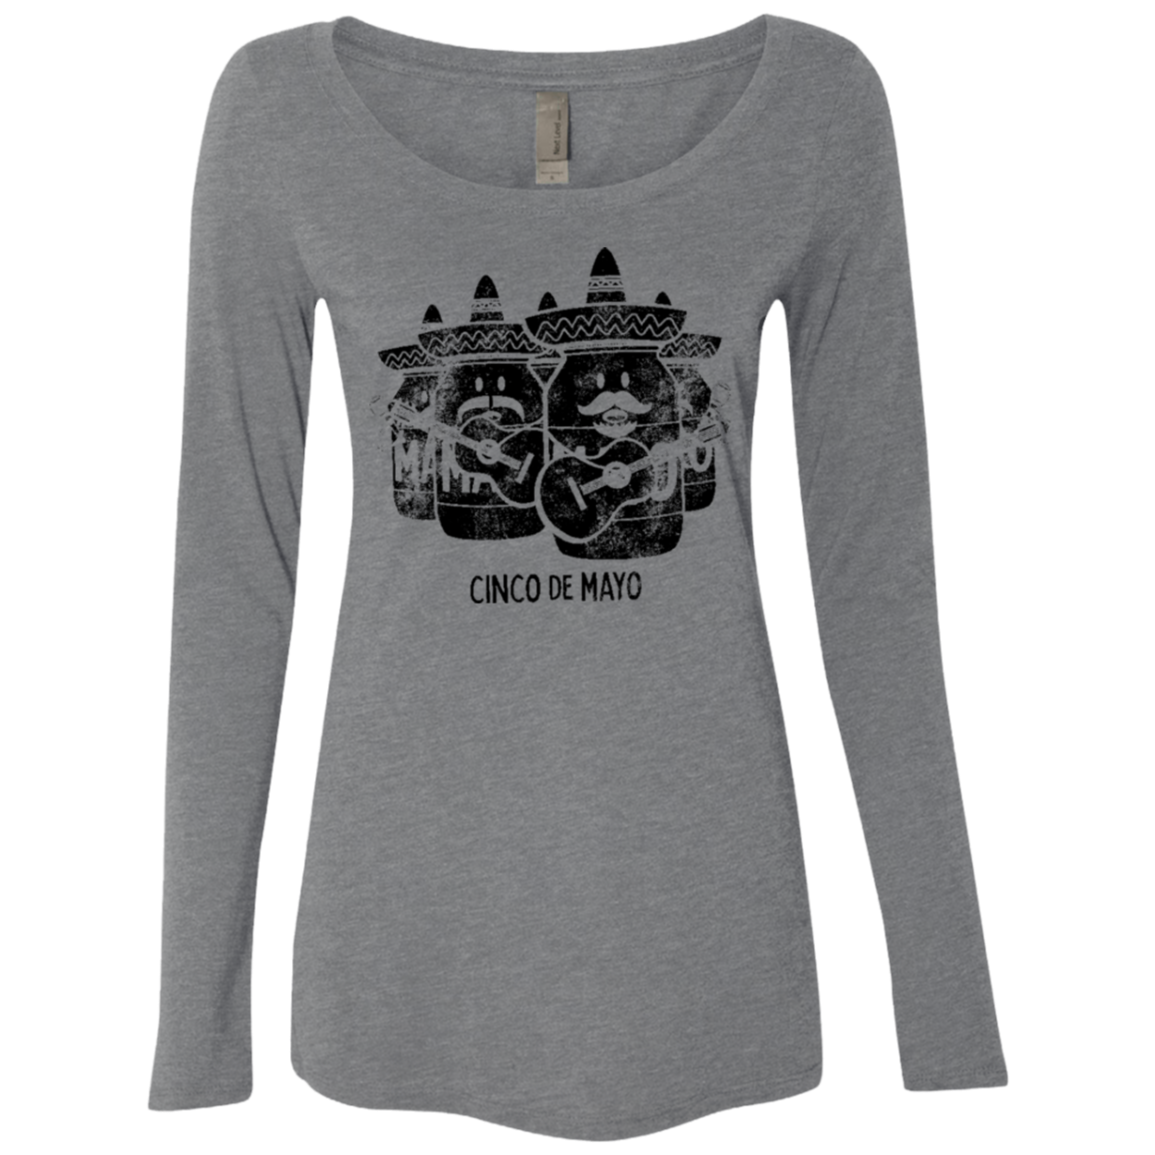 Cinco de Mayo Women's Long Sleeve Tee - Trendy Tees